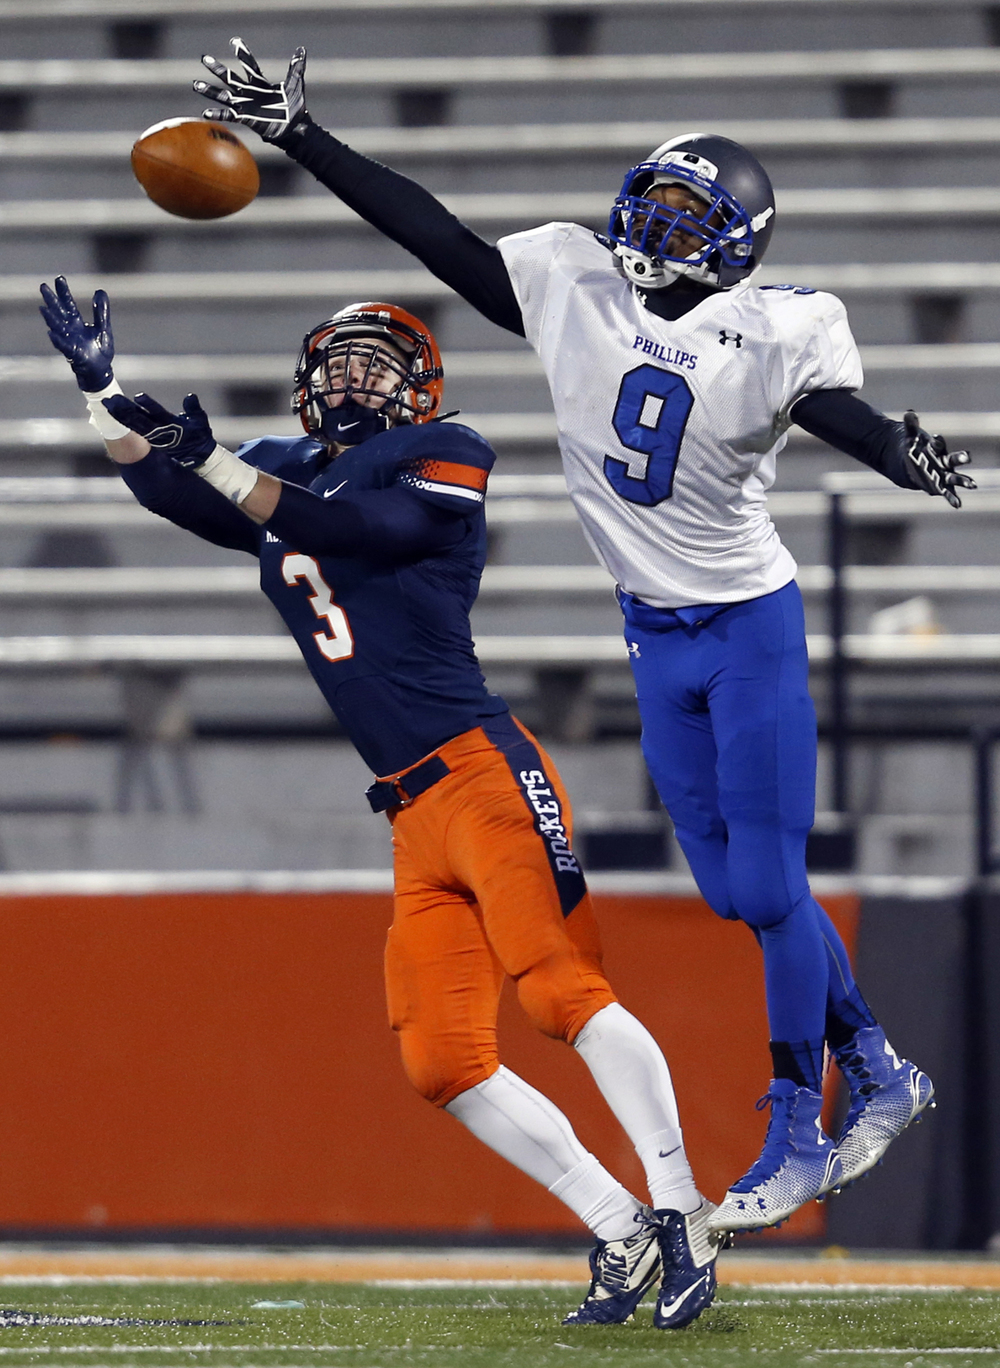 Rochester's Christian Lett tries to intercept a pass intended for Chicago Phillips' Quayvon Skanes during the Class 4A football championship game at Memorial Stadium Friday, Nov. 28, 2014. Ted Schurter/The State Journal-Register